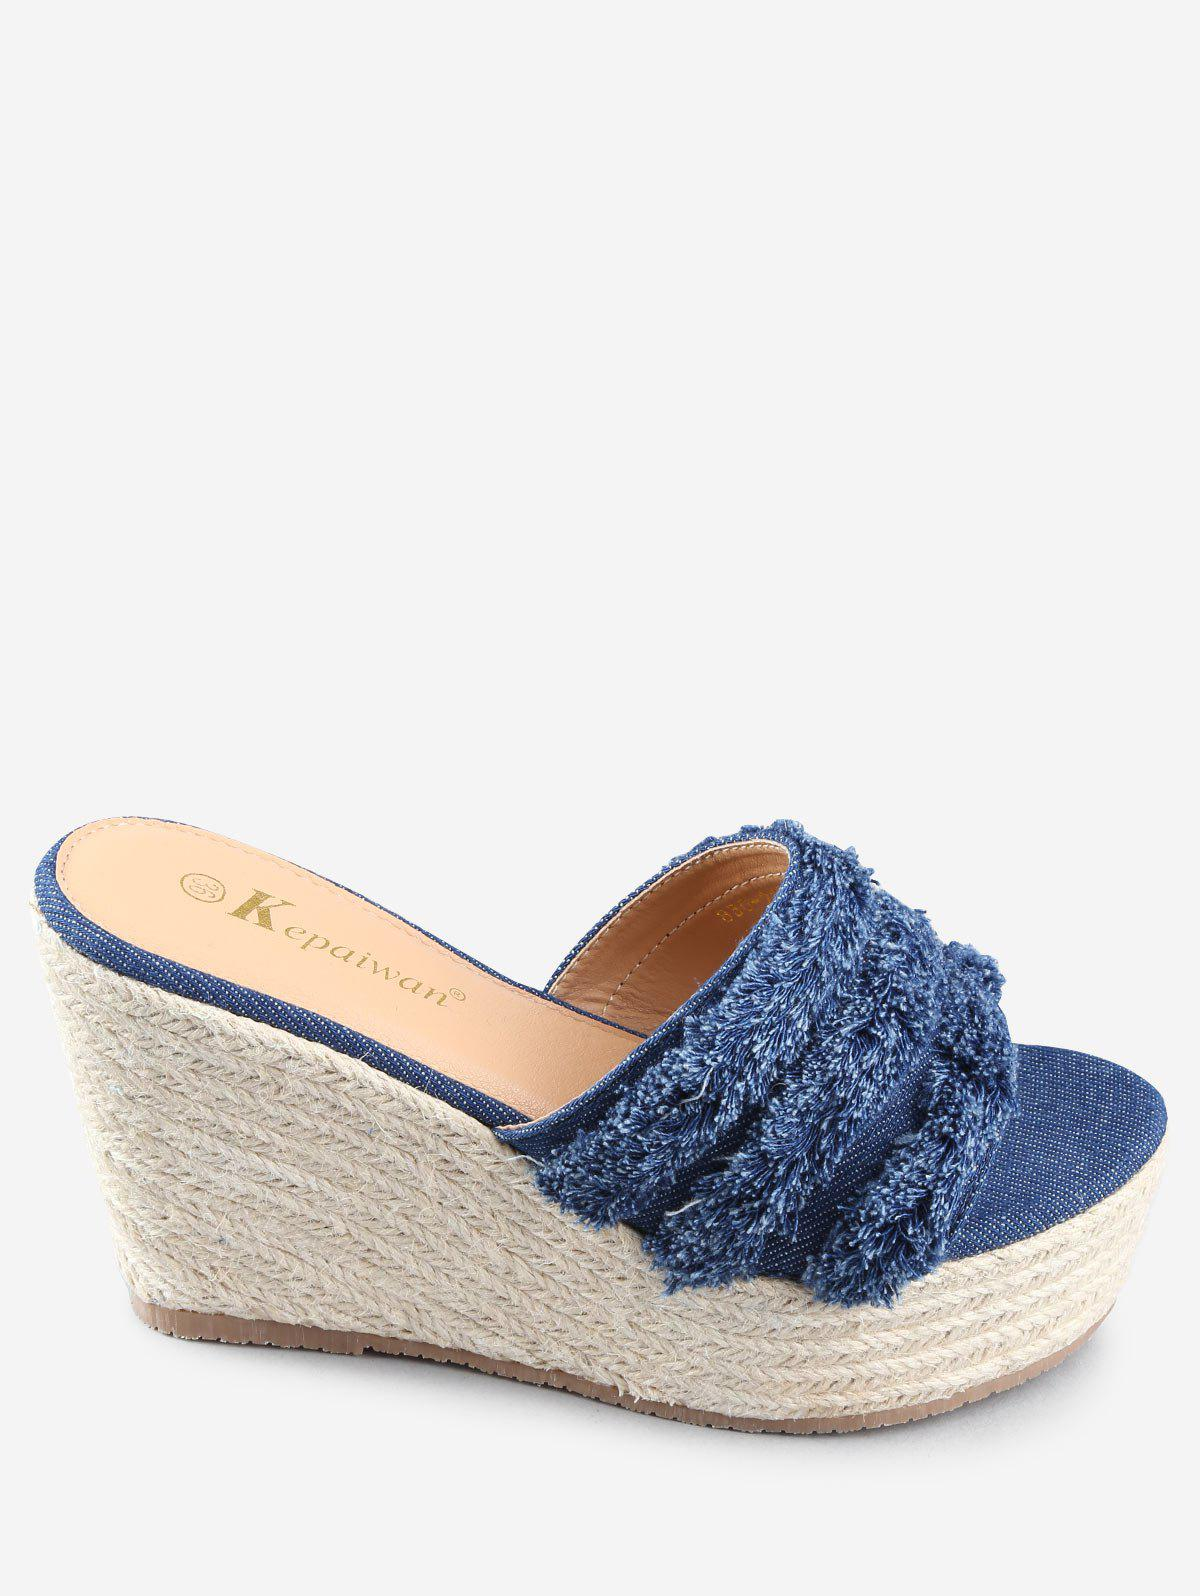 Wedge Heel Denim Leisure Frayed Edge Slides - DEEP BLUE 39